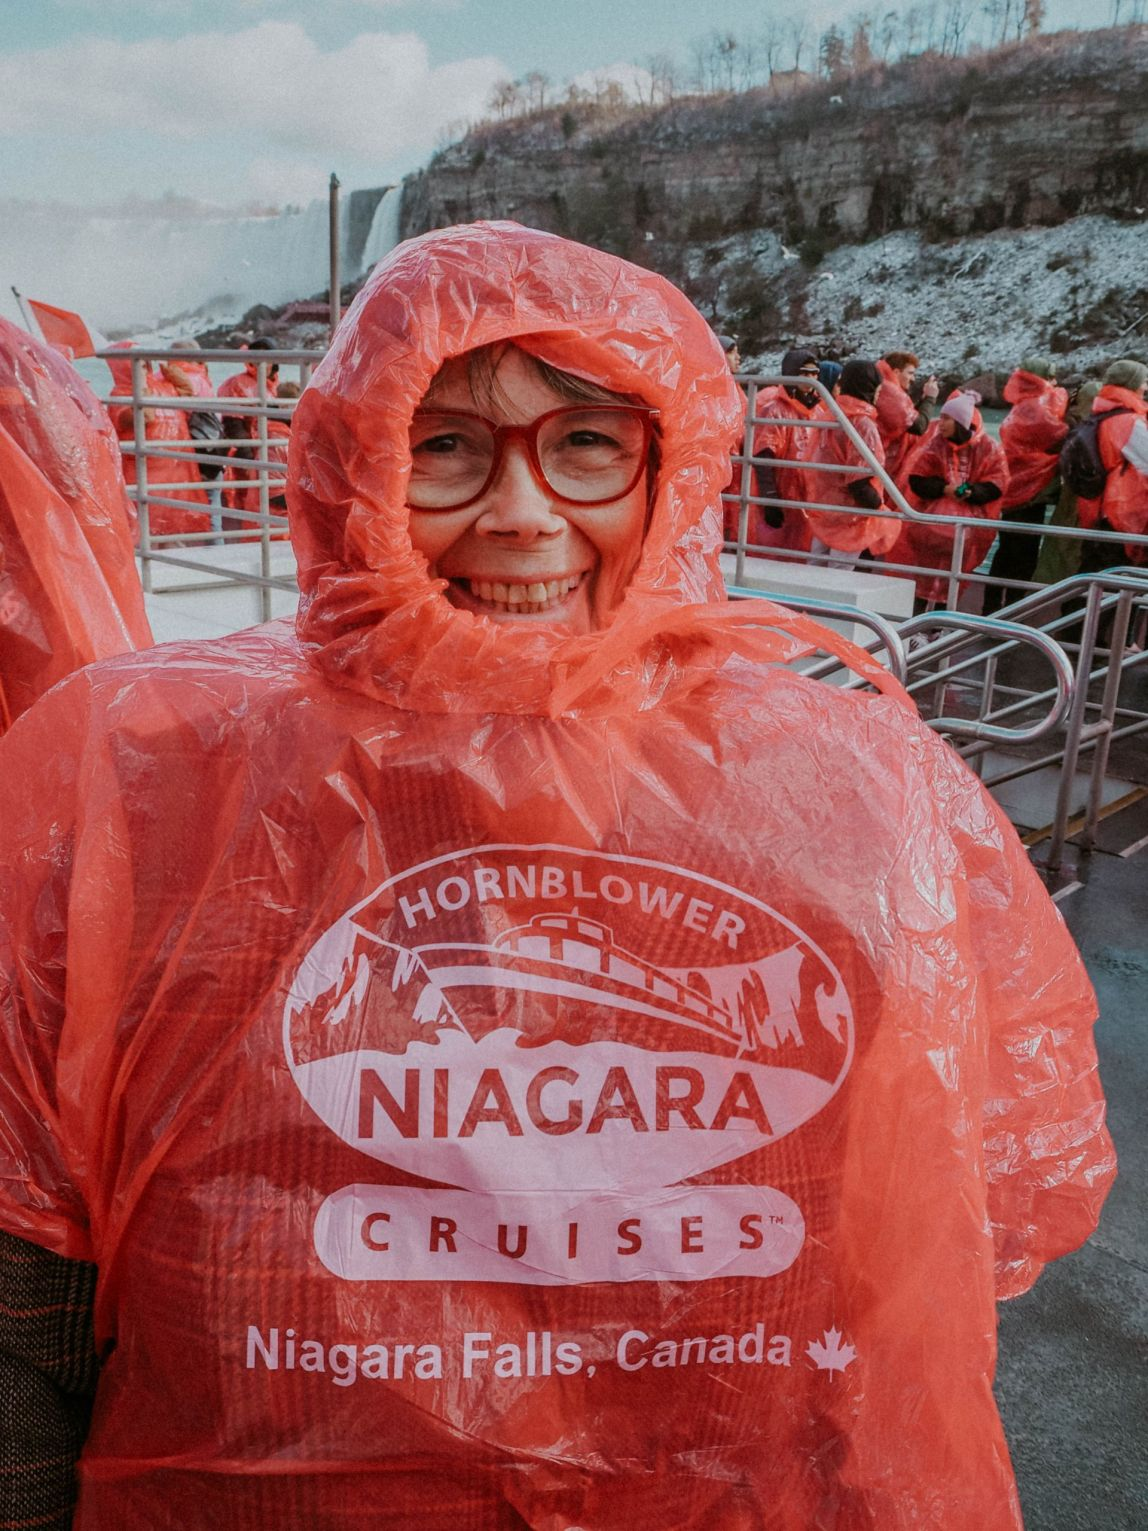 Hornblower boat ride niagara falls queen tours kate winney toronto travel guide canada